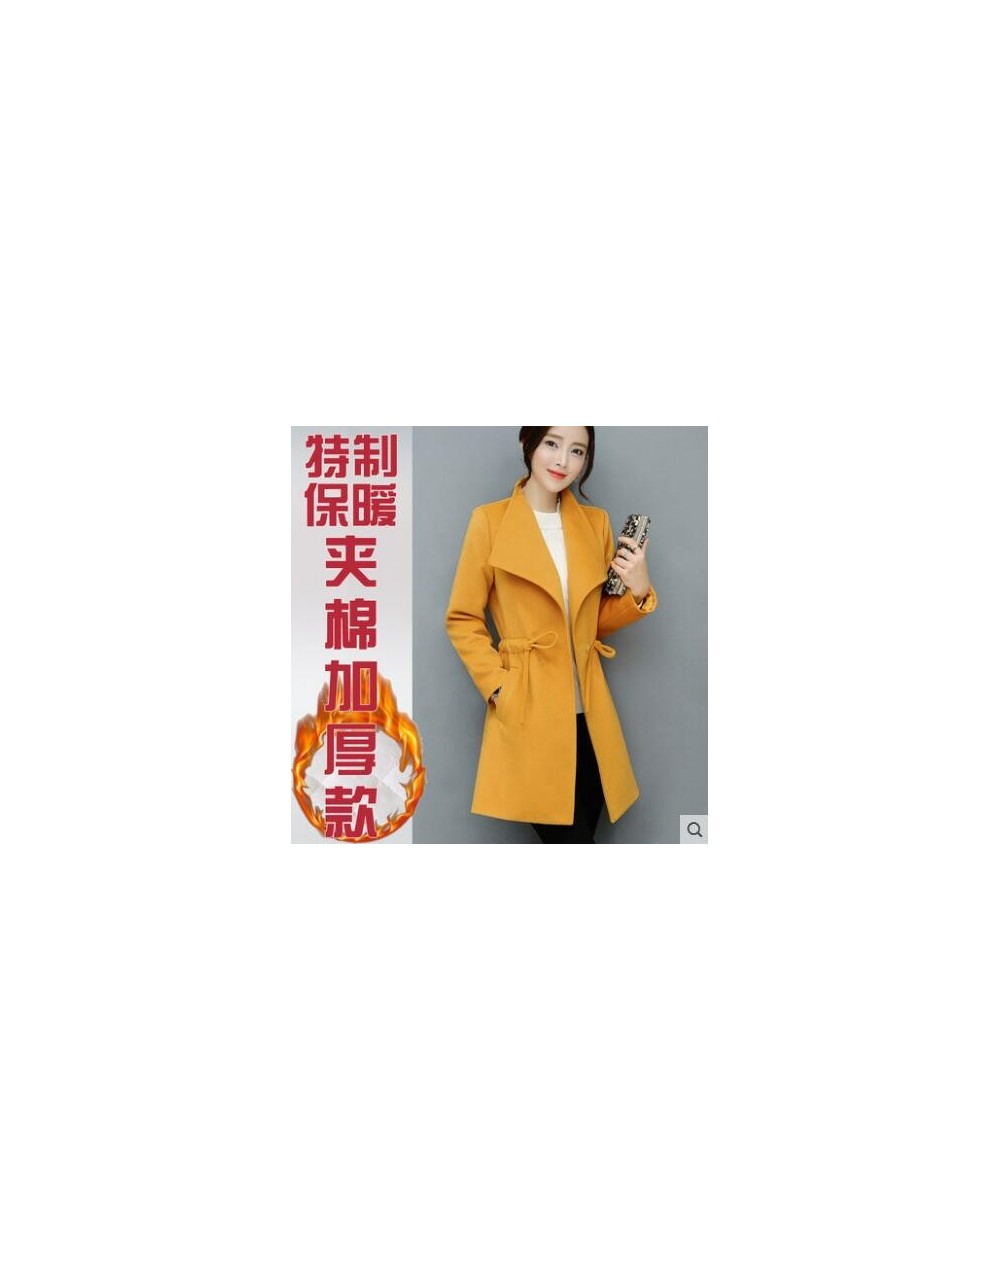 Cheap wholesale 2017 new Autumn Winter Hot selling women's fashion casual warm jacket female bisic coats A154-170919Z - 2 - ...